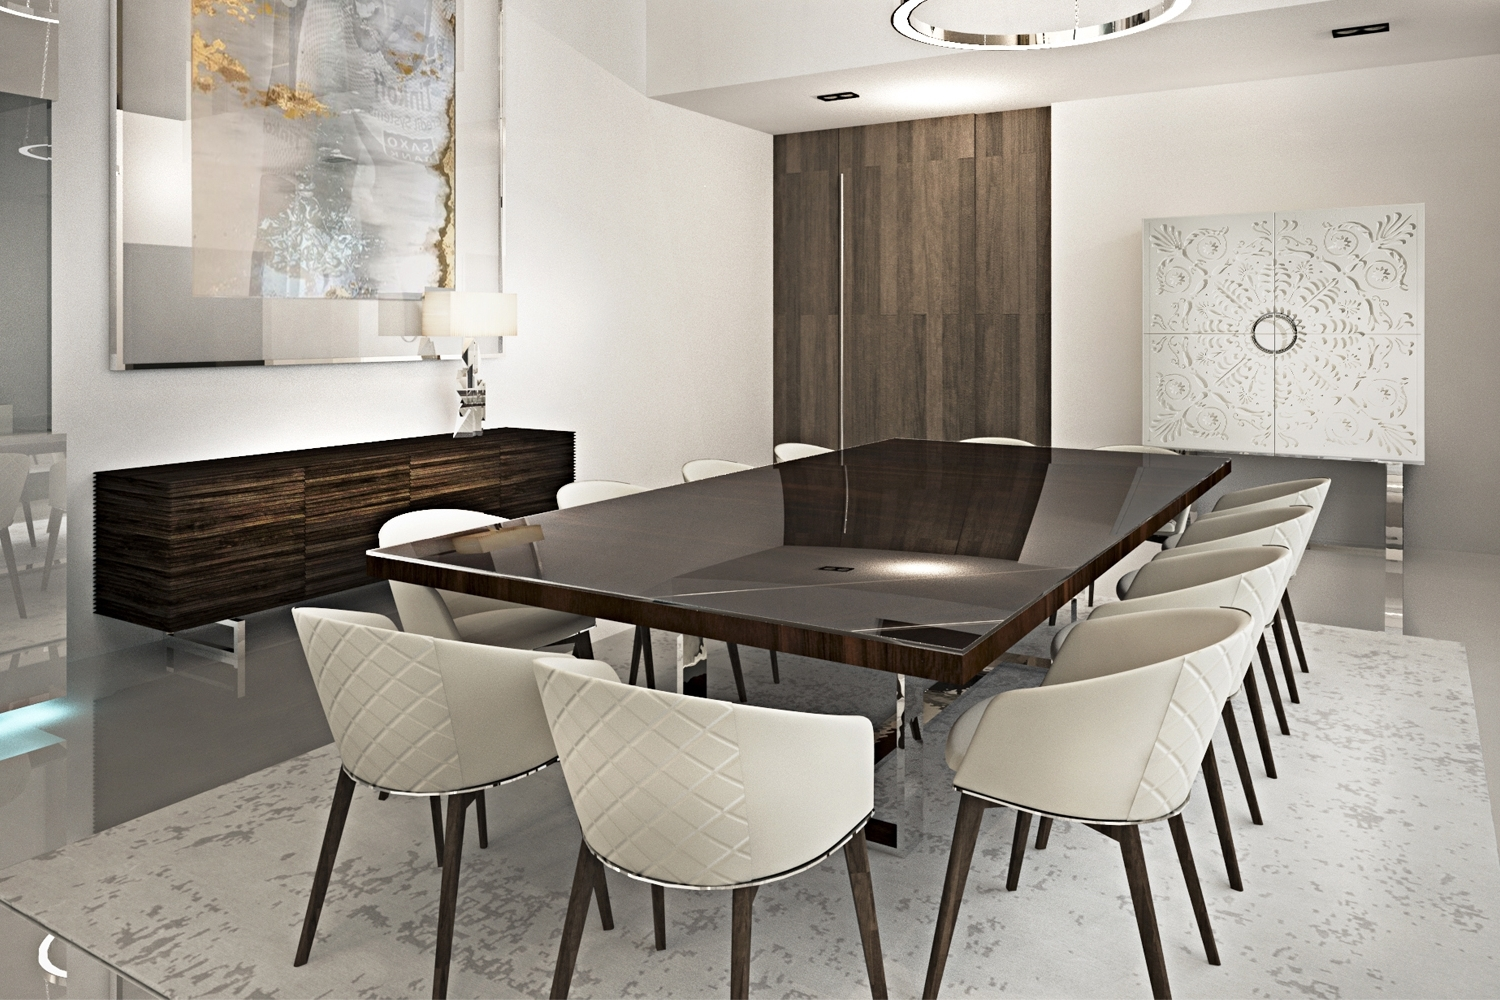 Fashionable Modern Dining Table And Chairs Inside Luxury Dining Room Sets (View 8 of 25)